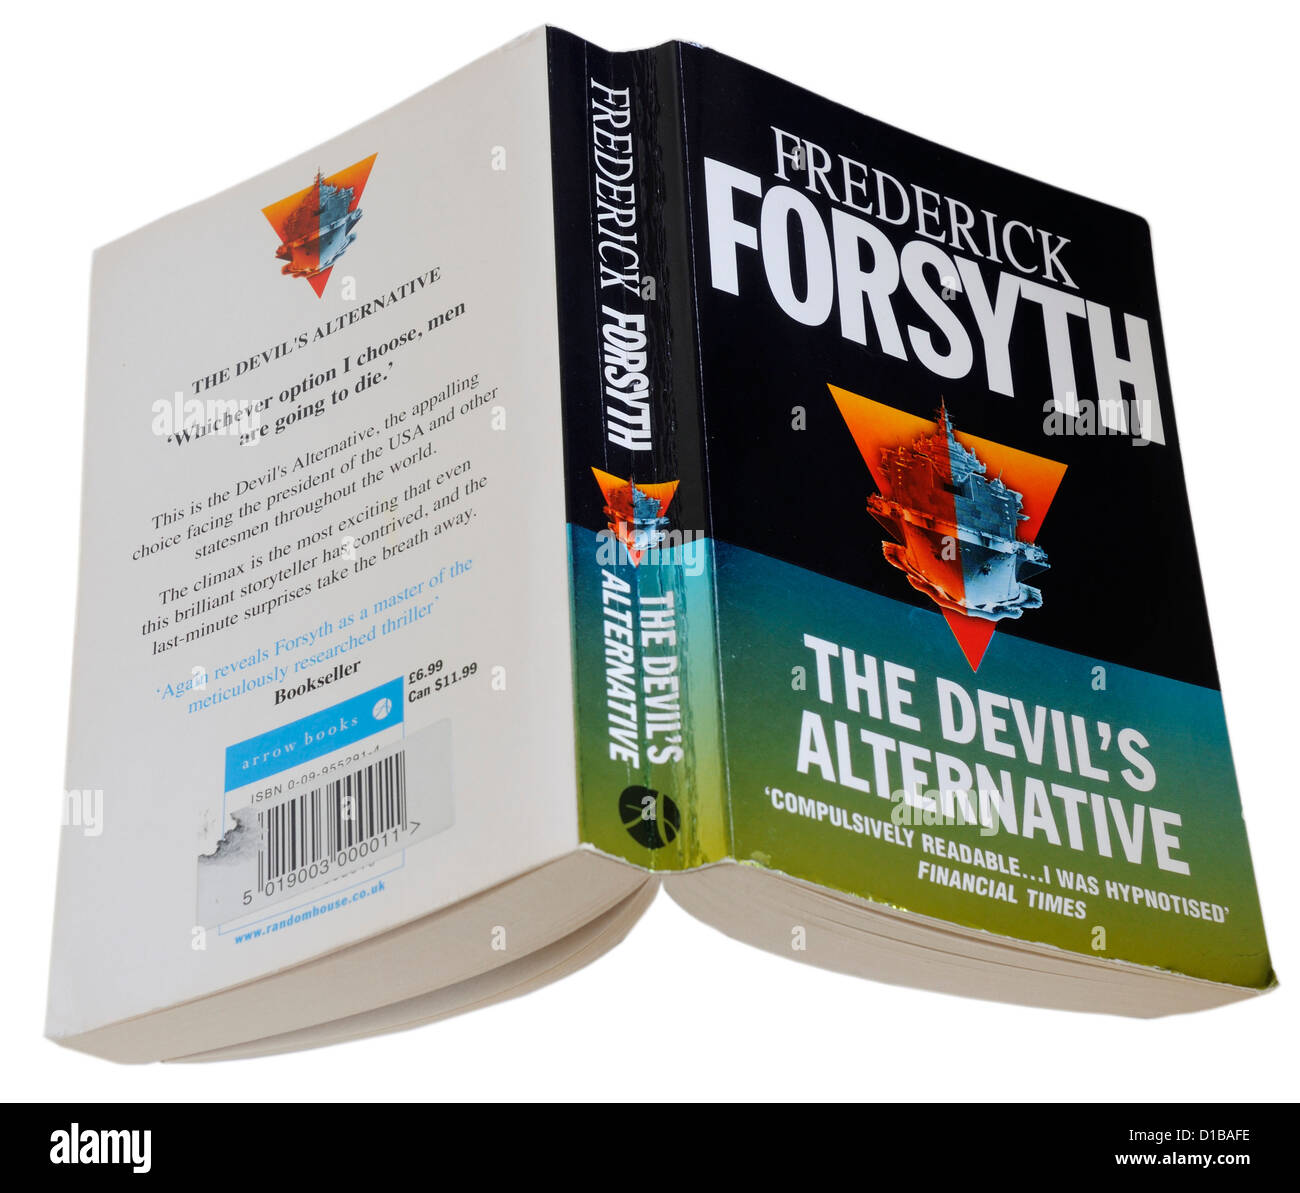 The Devils Alternative by Frederick Forsyth - Stock Image